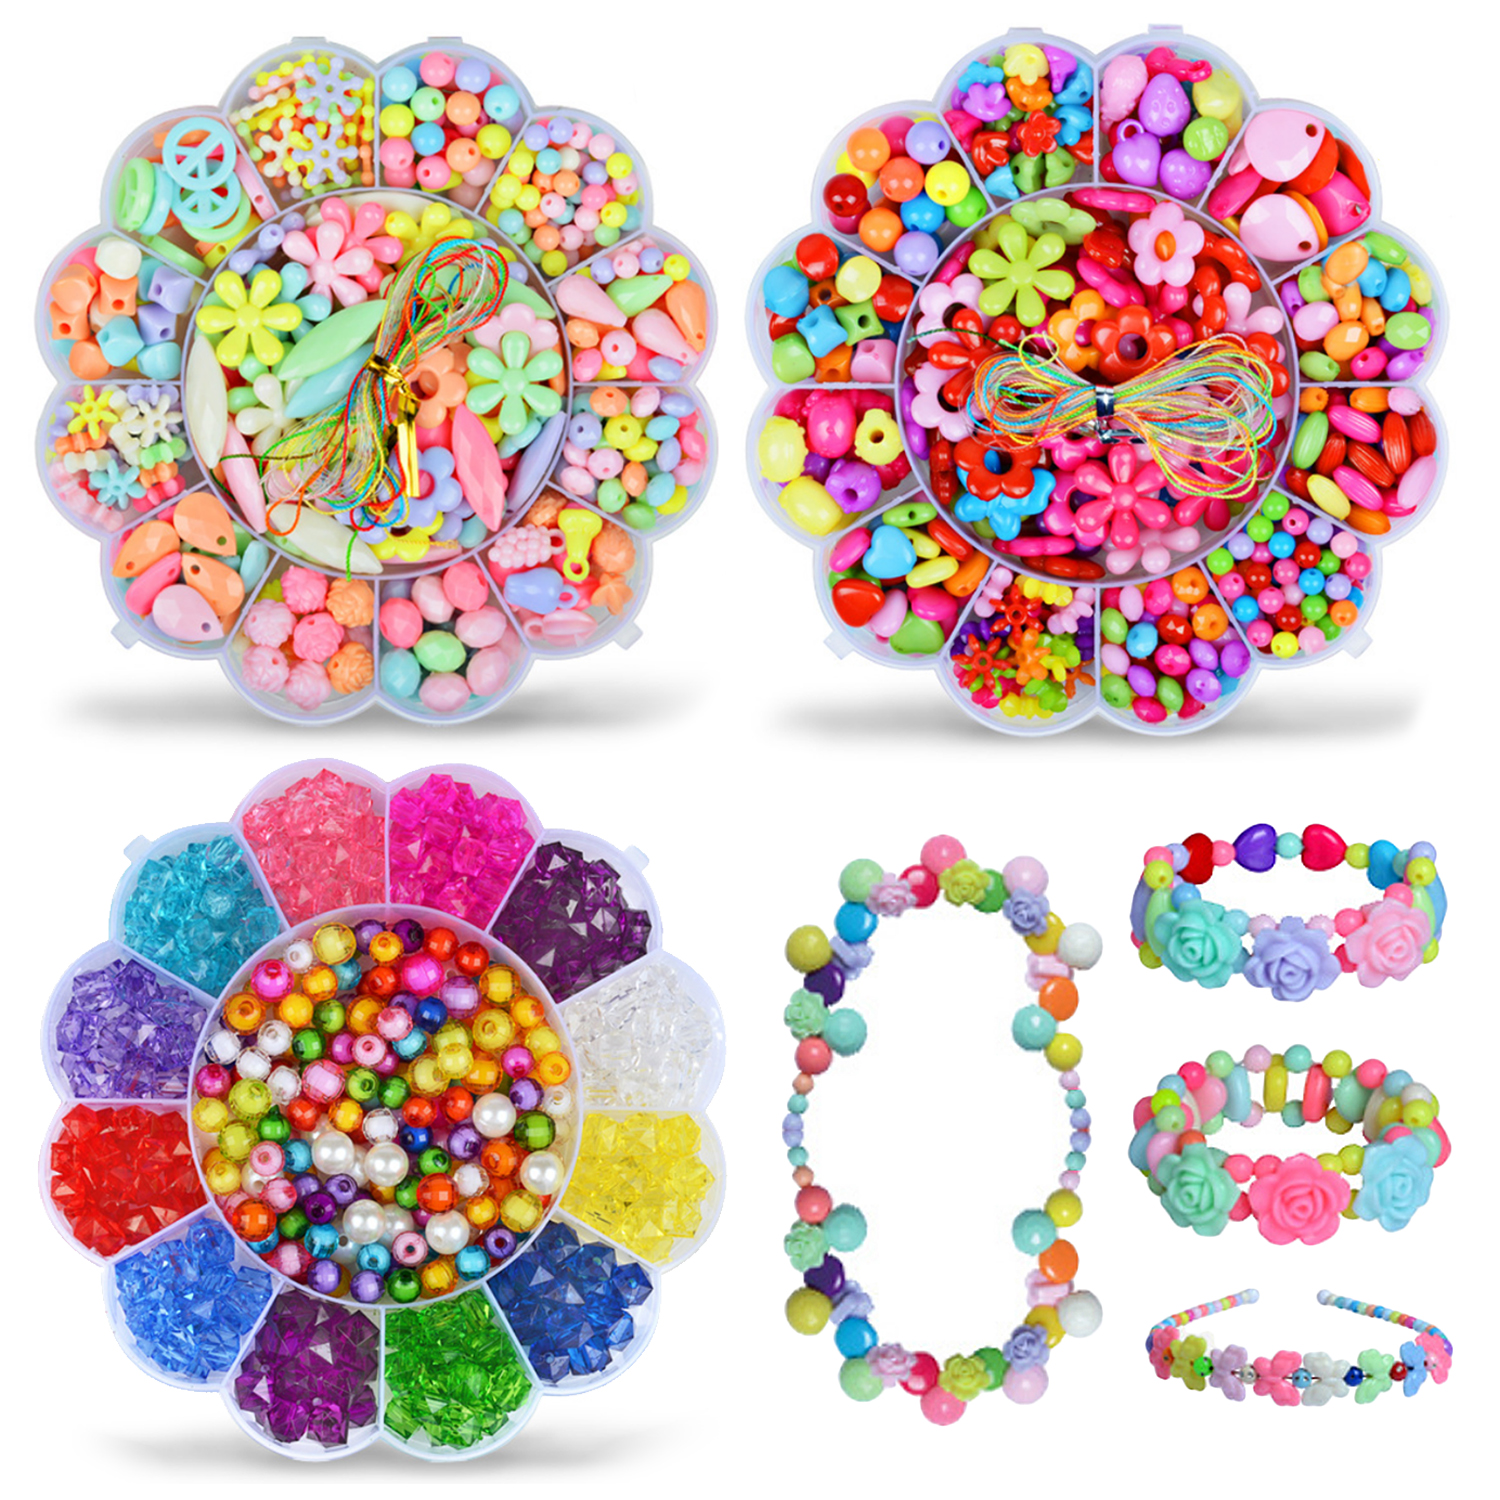 Besegad 350PCS  DIY Toys String Beads Set Assorted Style Cute Colorful Loose Bead For Children Bracelet Jewelry Making DIY Craft